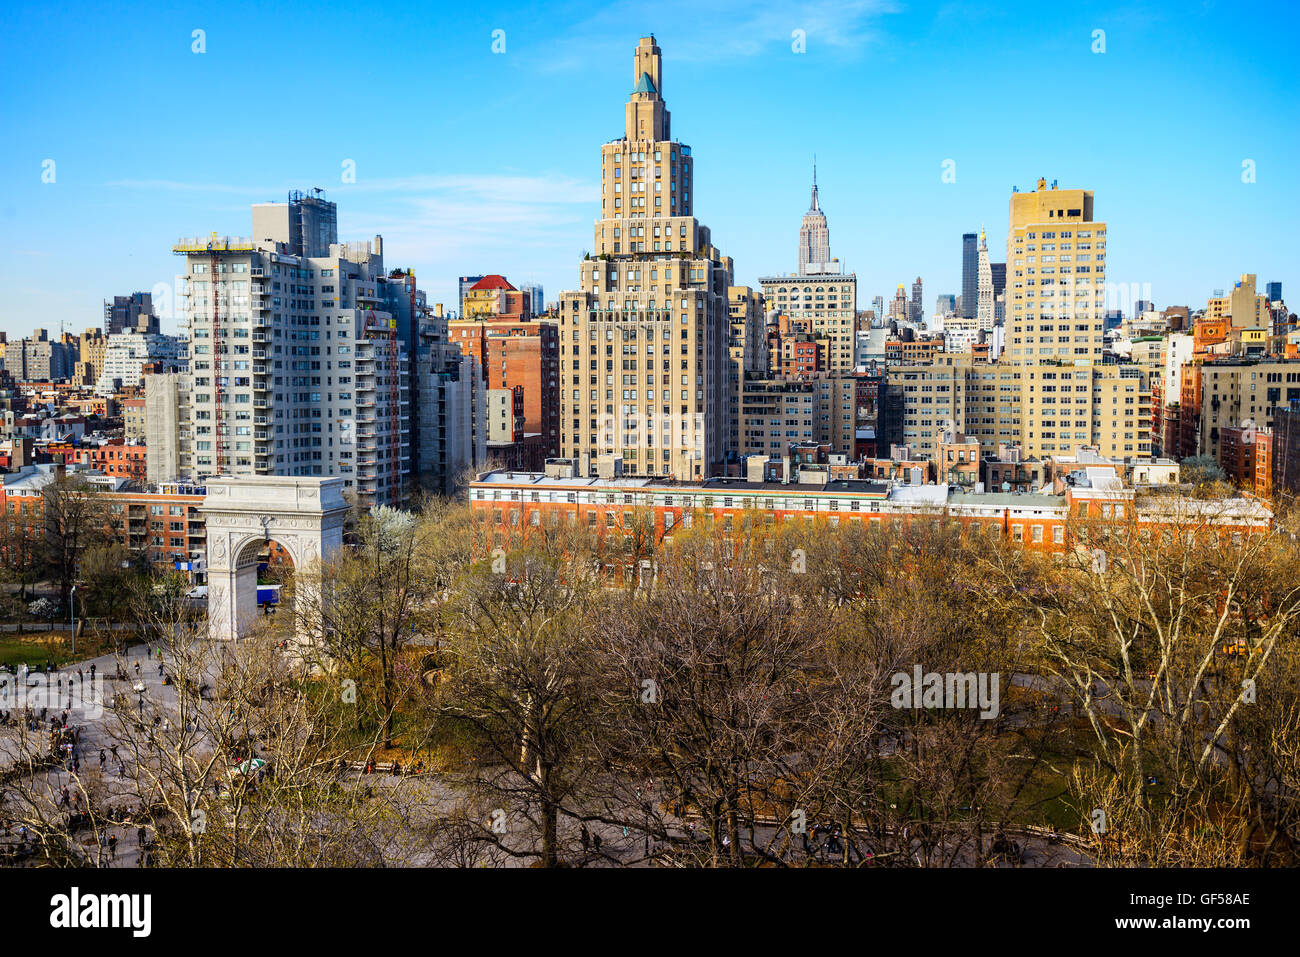 Washington Square Park and Greenwich Village Cityscape in New York City. Stock Photo